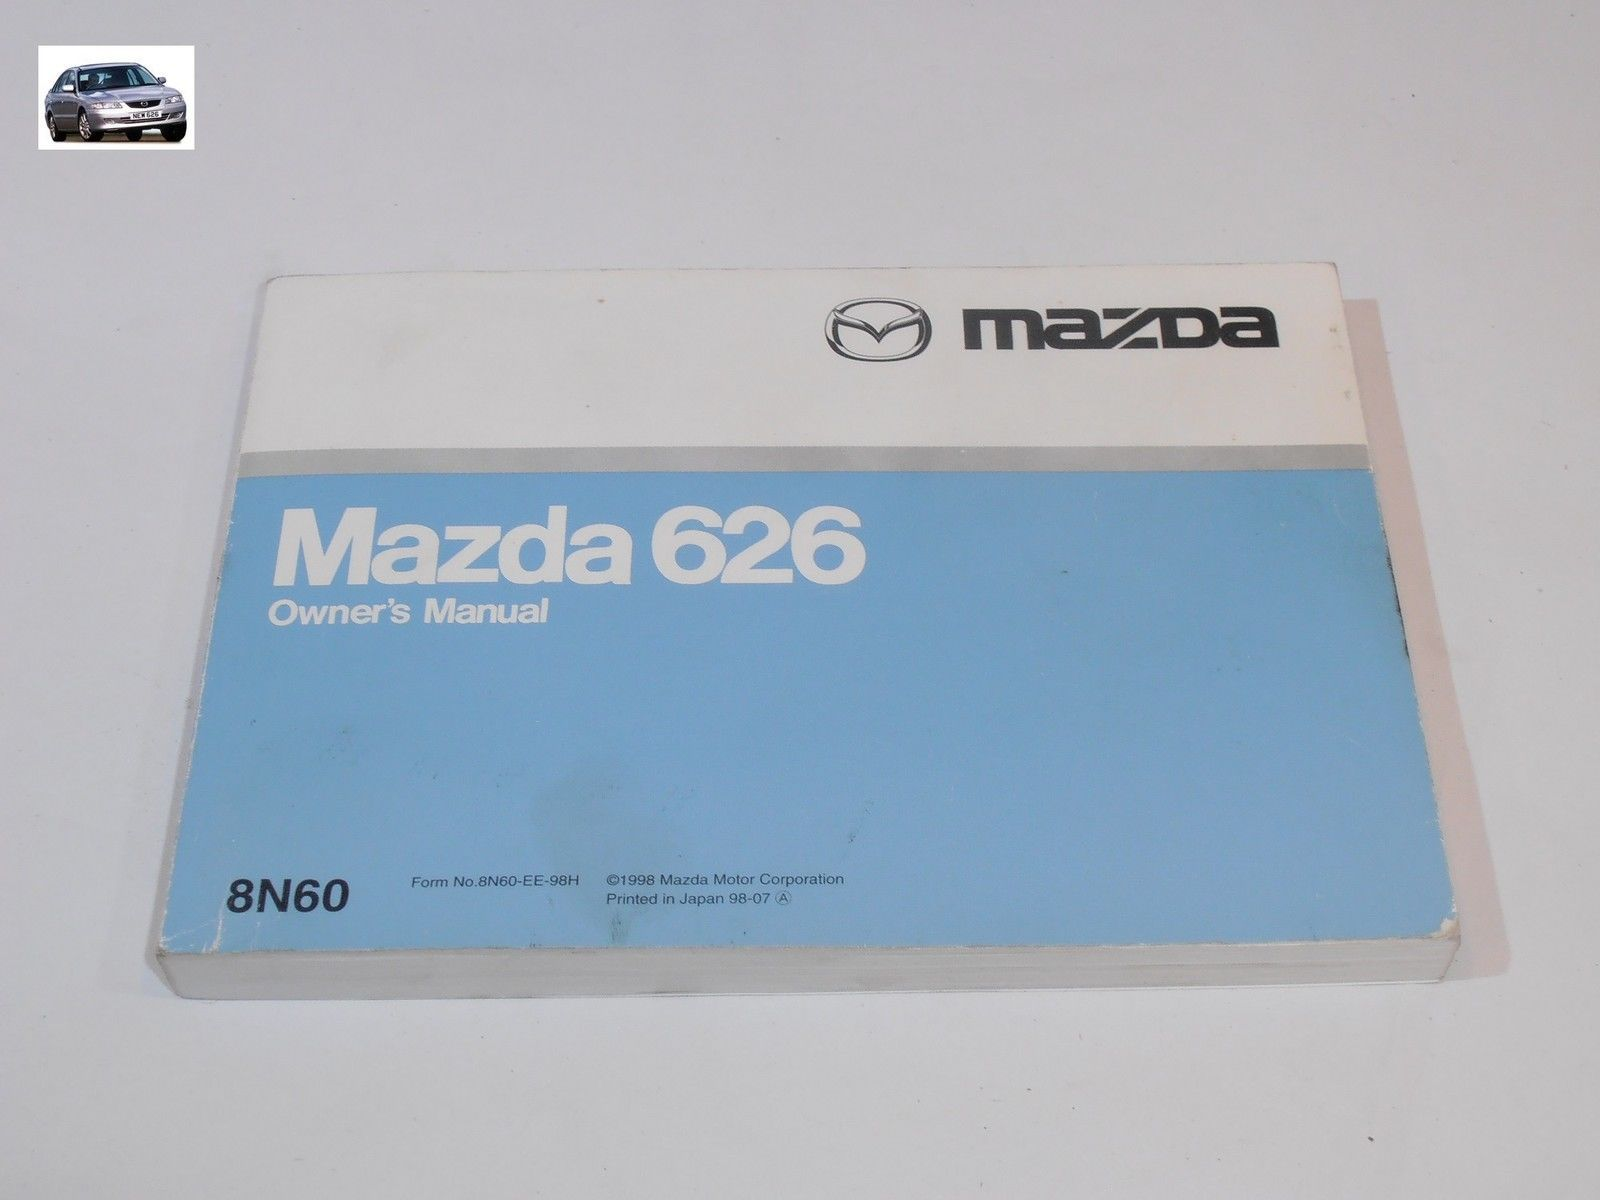 mazda 626 models gf gw from 1997 to 2002 handbook owners manual 8n60 rh  citycarparts co uk mazda 6 2002 service manual 2000 Mazda 626